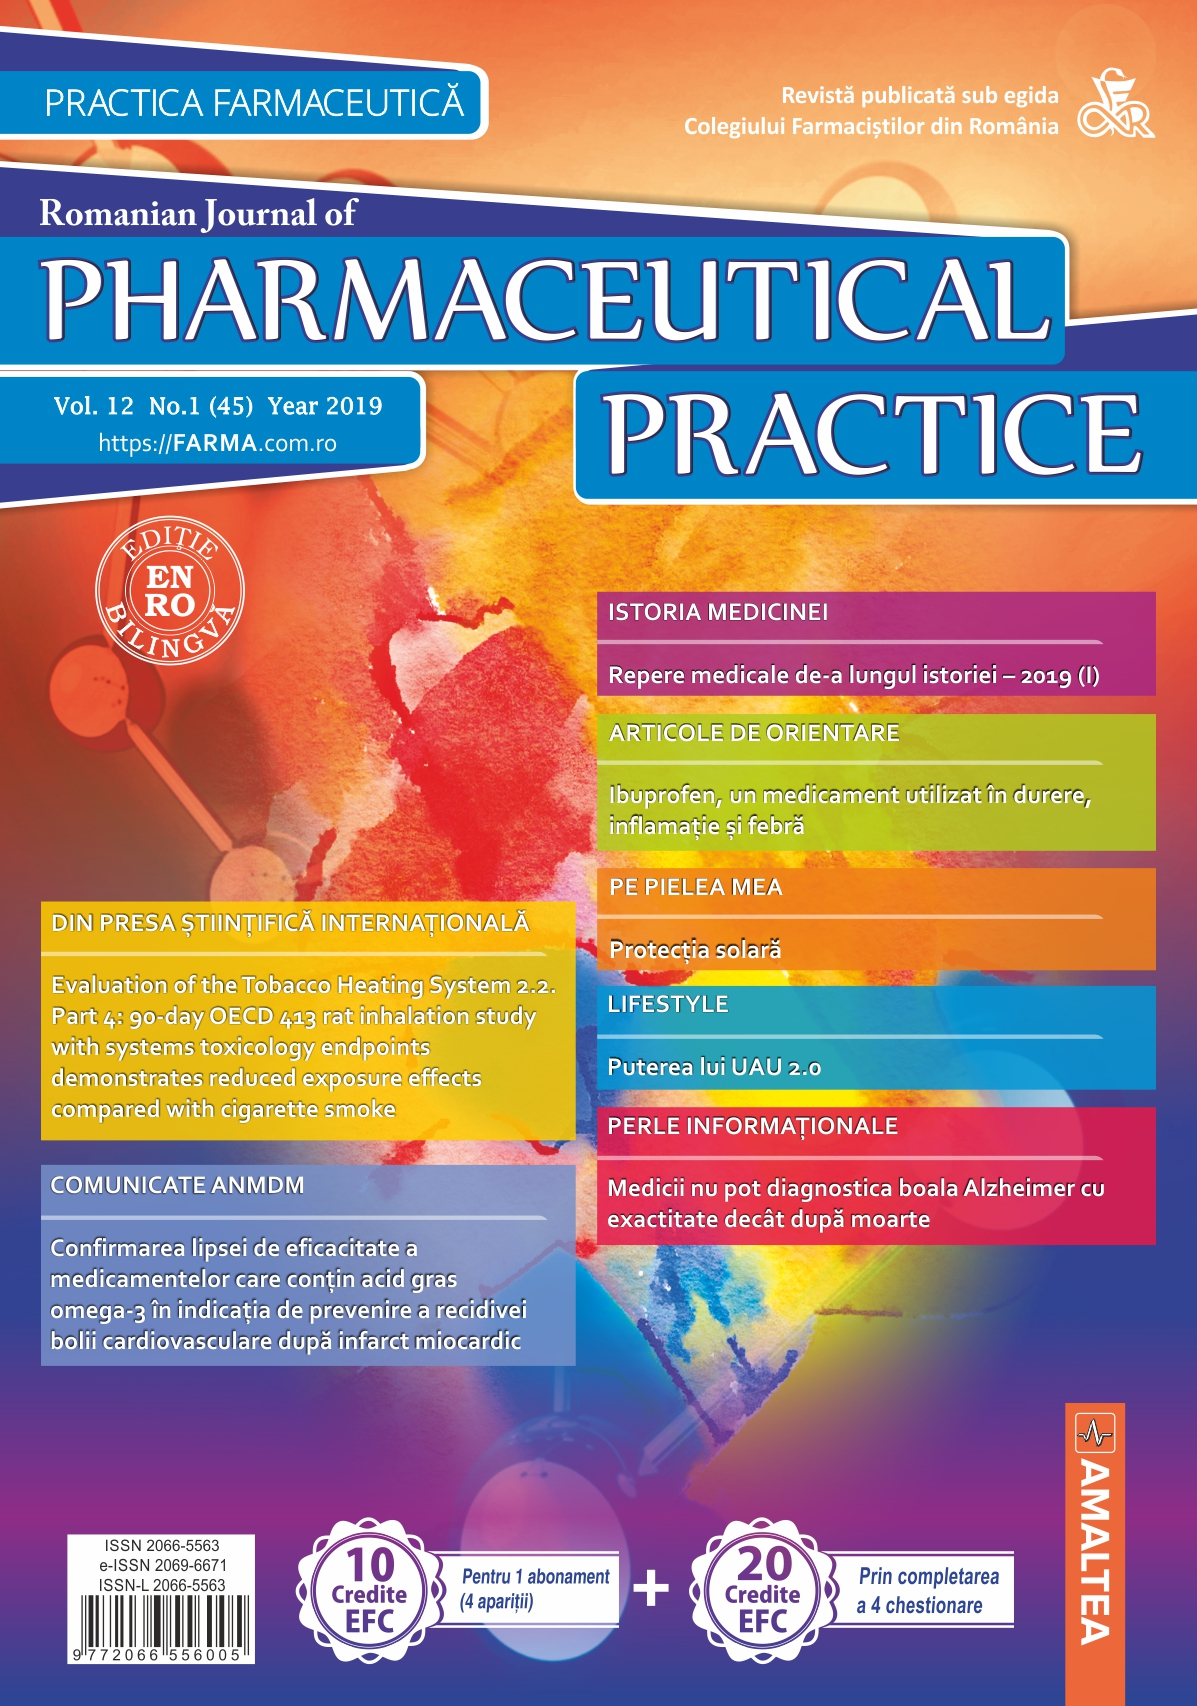 Romanian Journal of Pharmaceutical Practice - Practica Farmaceutica, Vol. 12, Nr. 1 (45), 2019